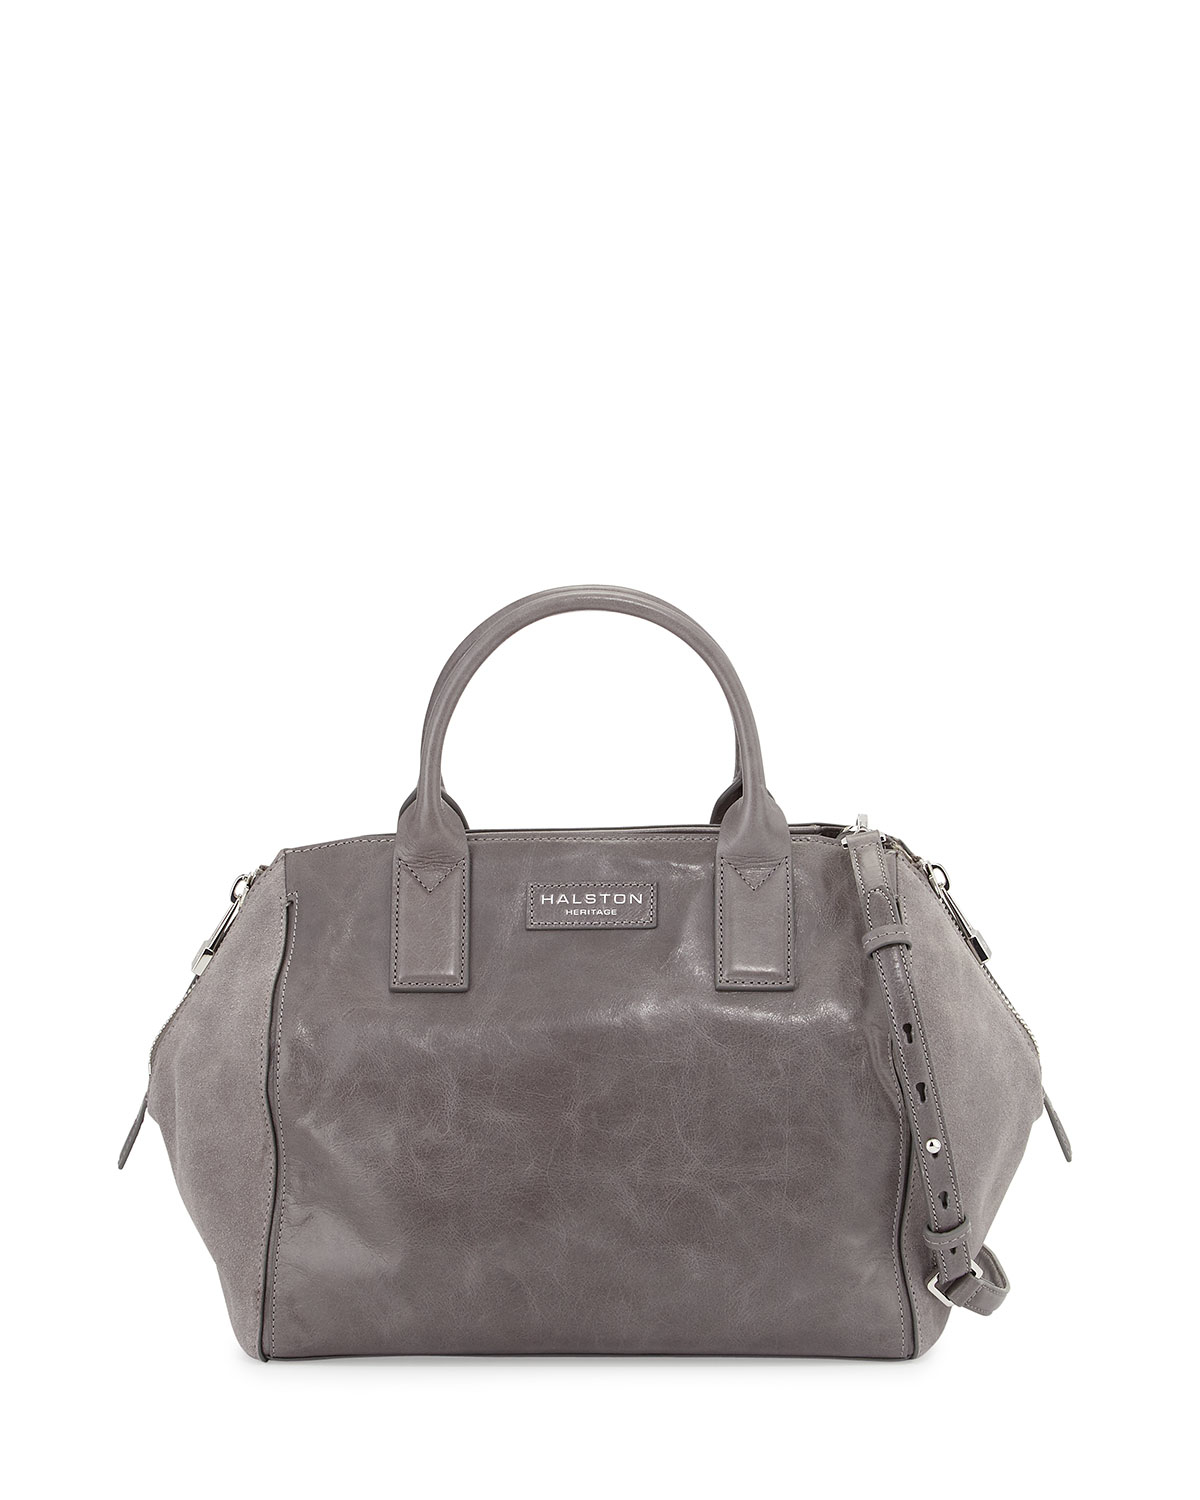 Halston Glazed Leather & Suede Satchel Bag in Gray | Lyst